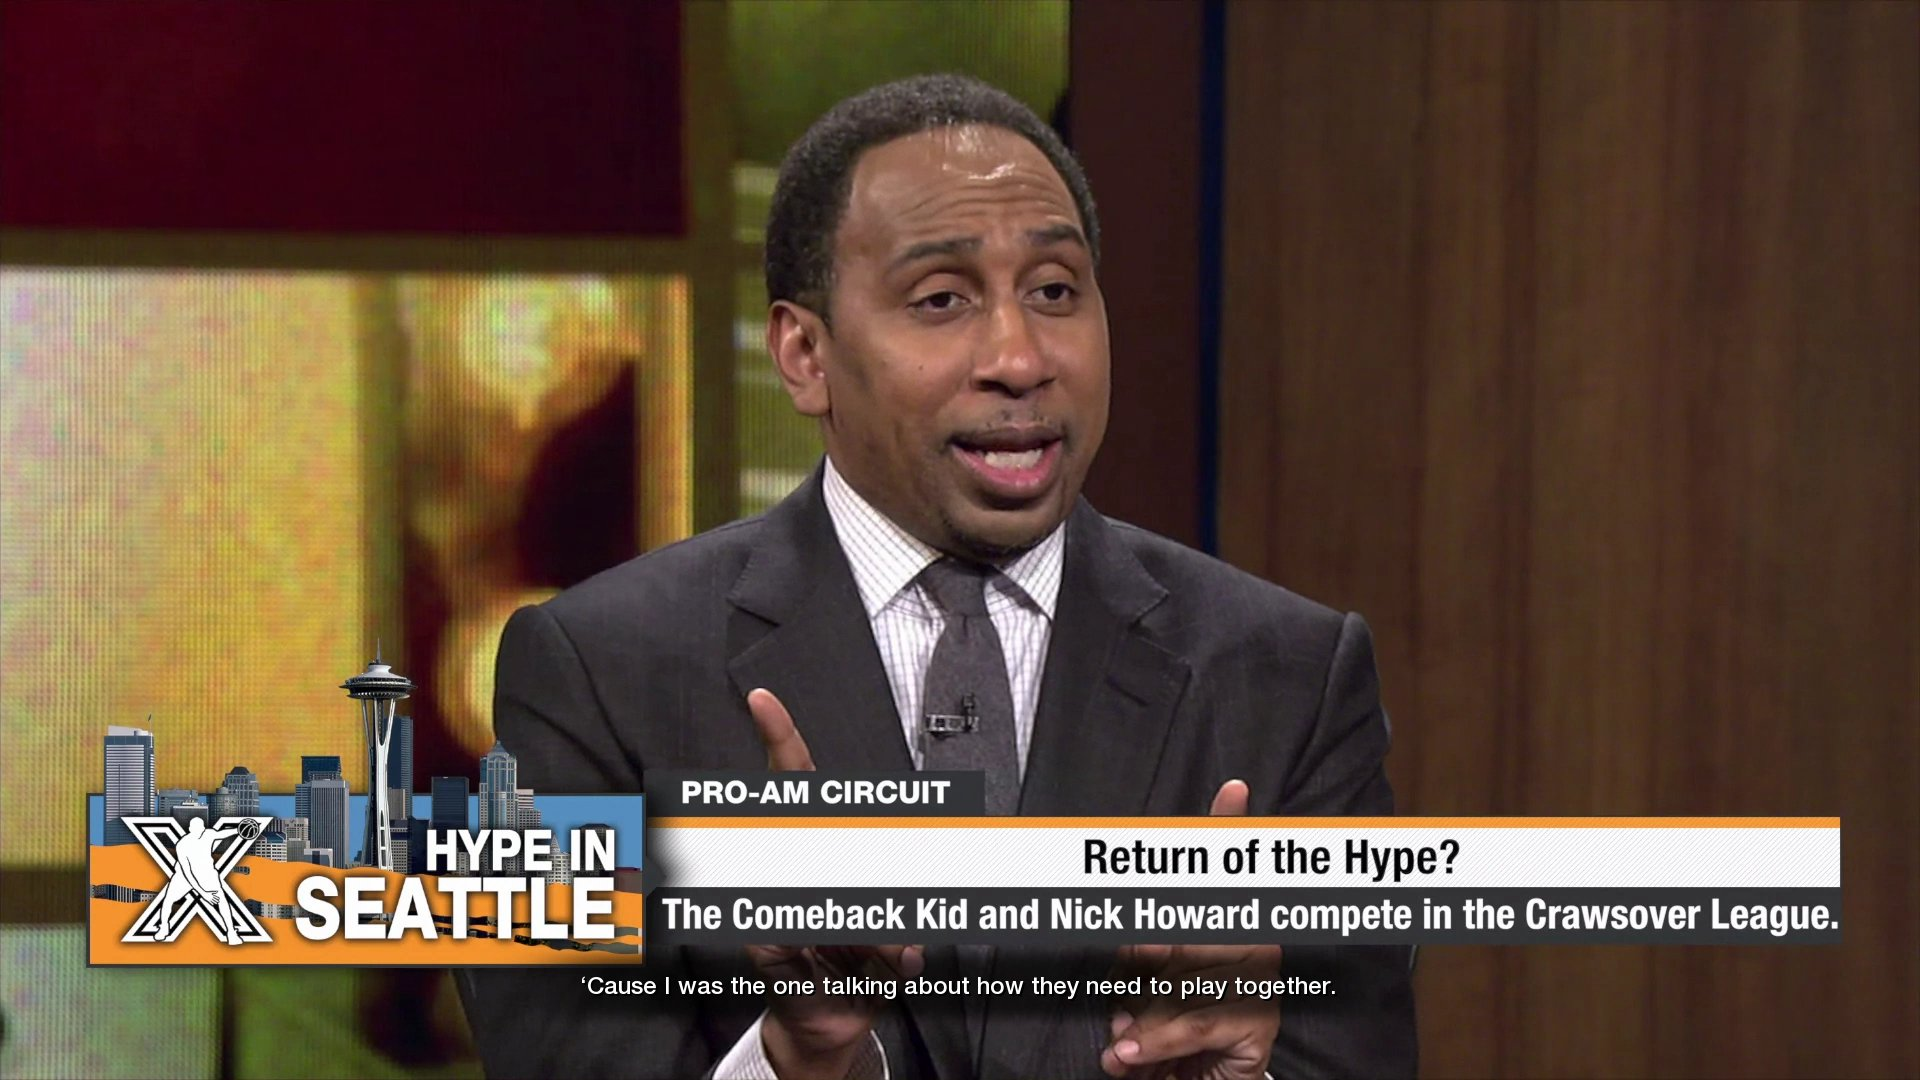 ESPN's Stephen A. Smith in